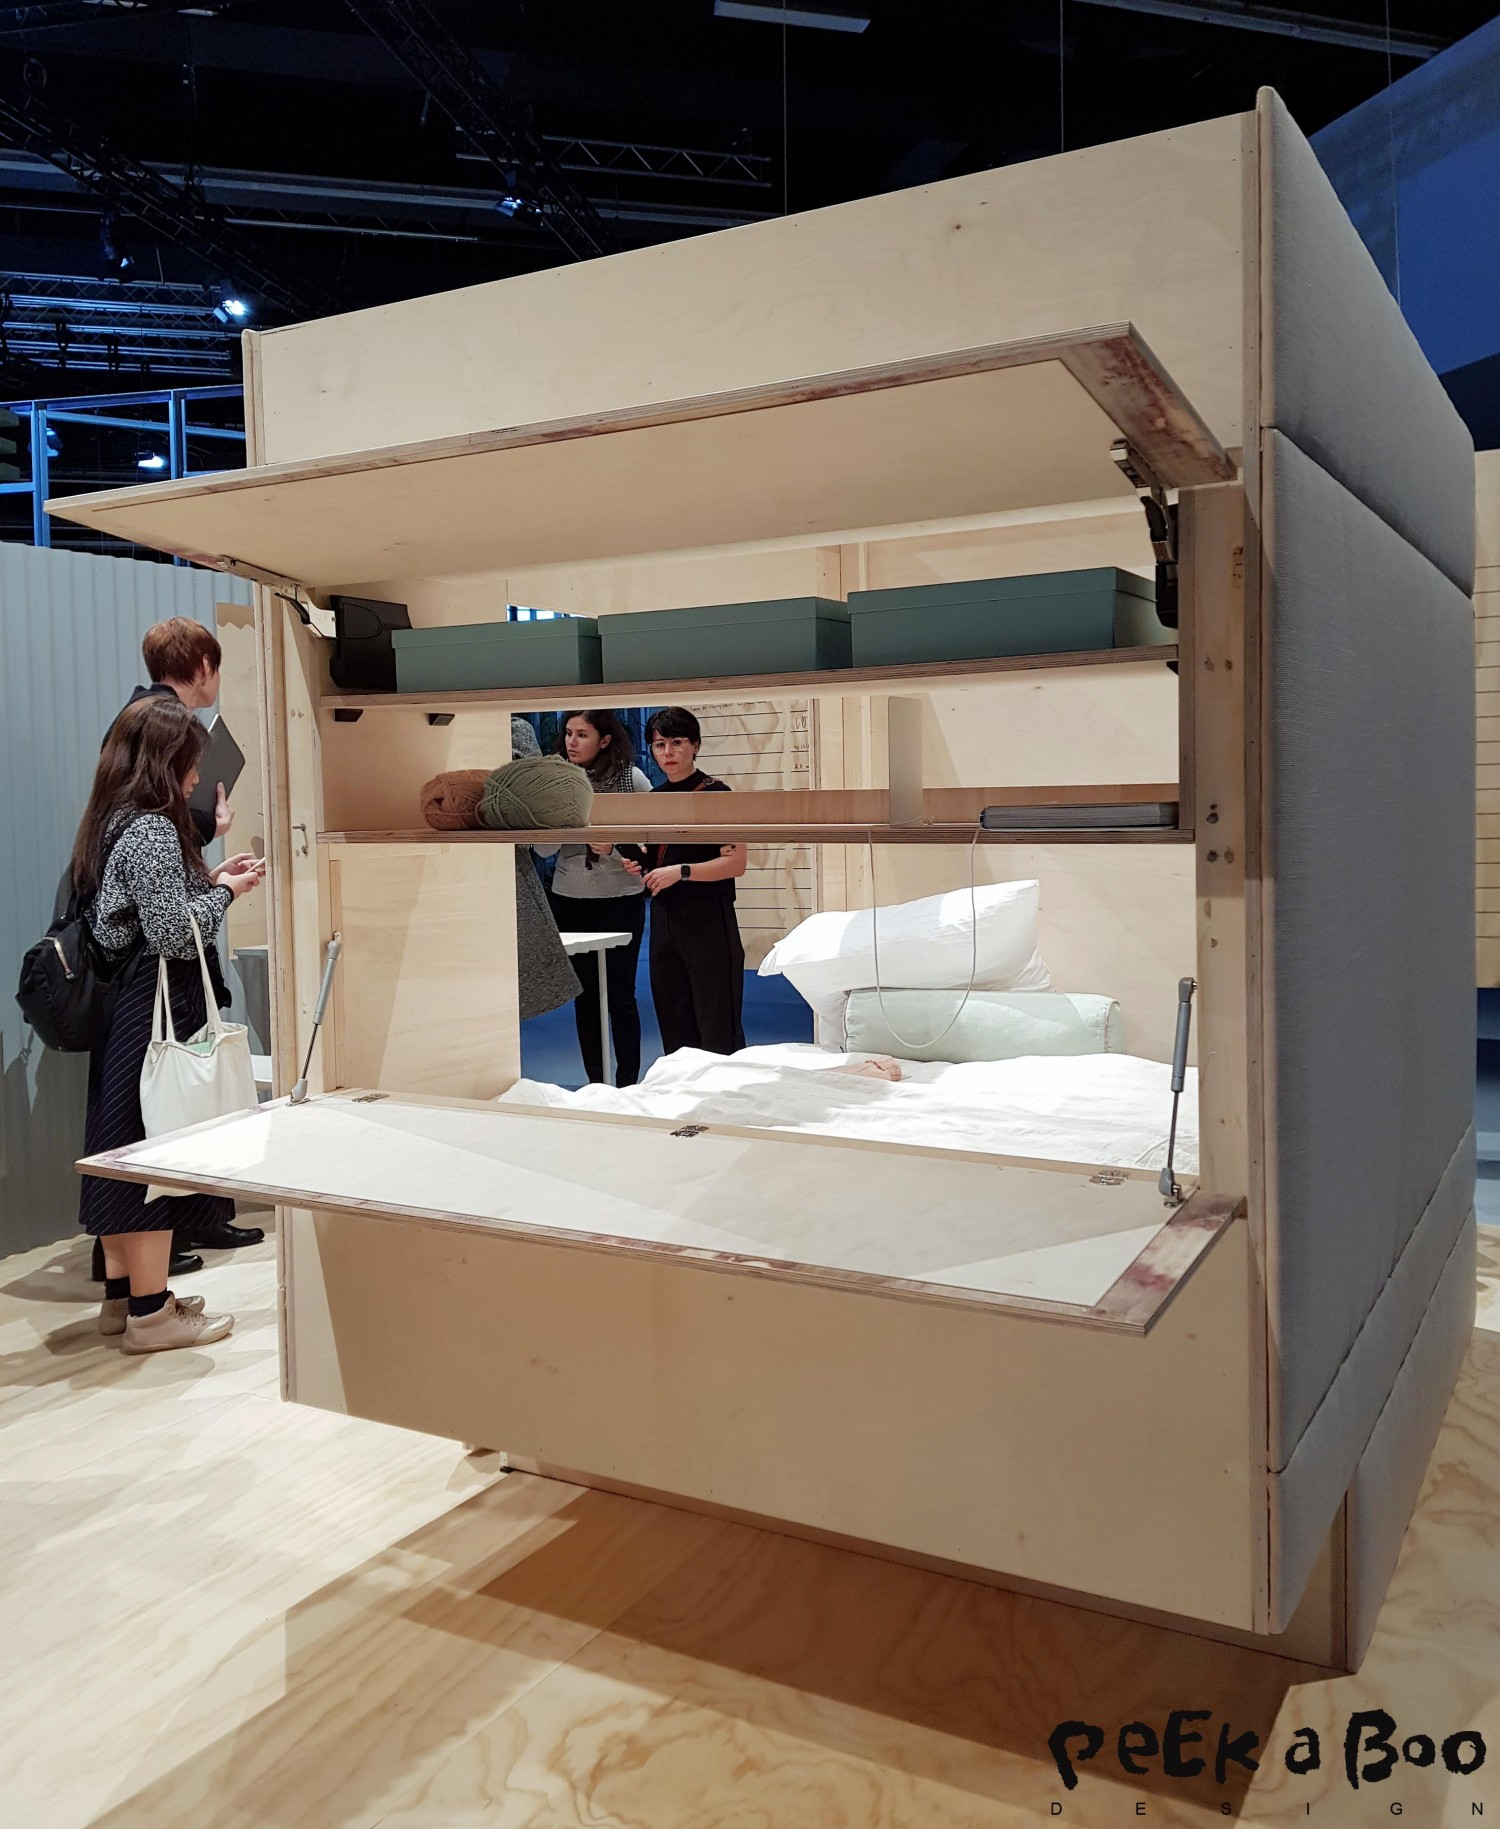 micro living modules designed to be reconfigured.